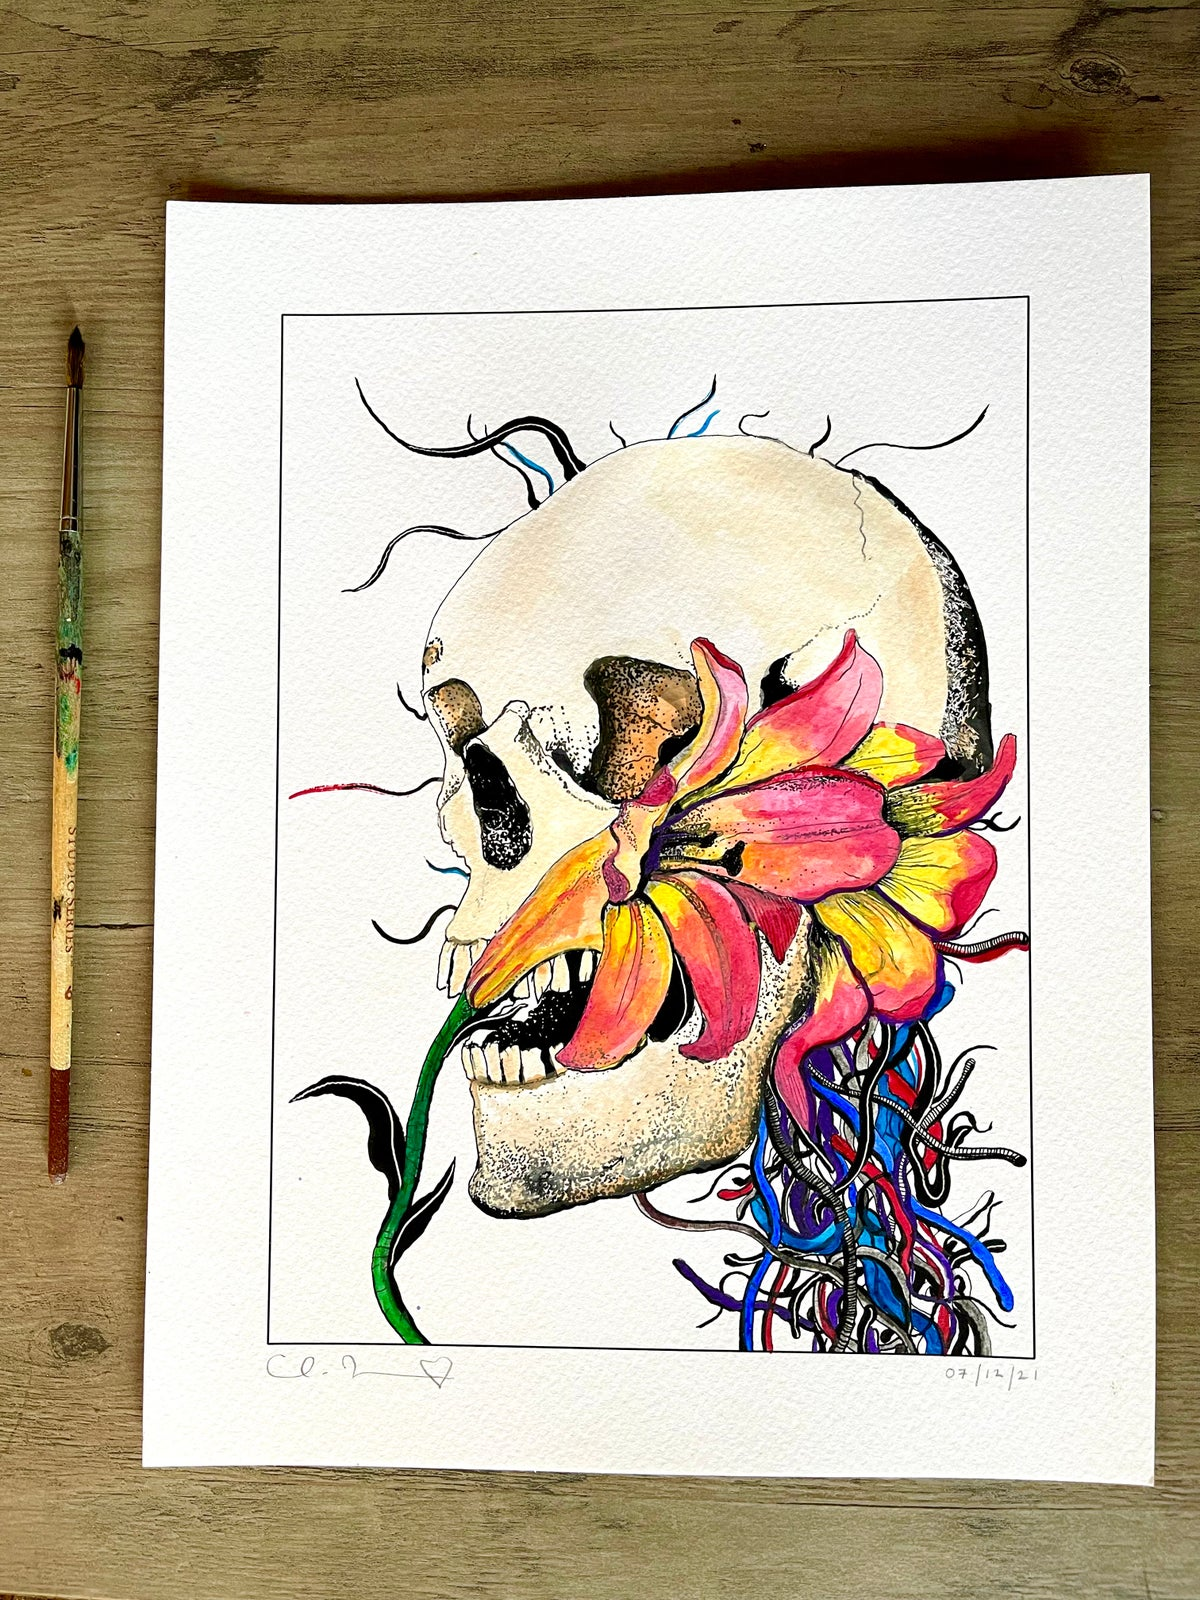 Image of 'Another Daydream' + Hand Painted Watercolor Accents